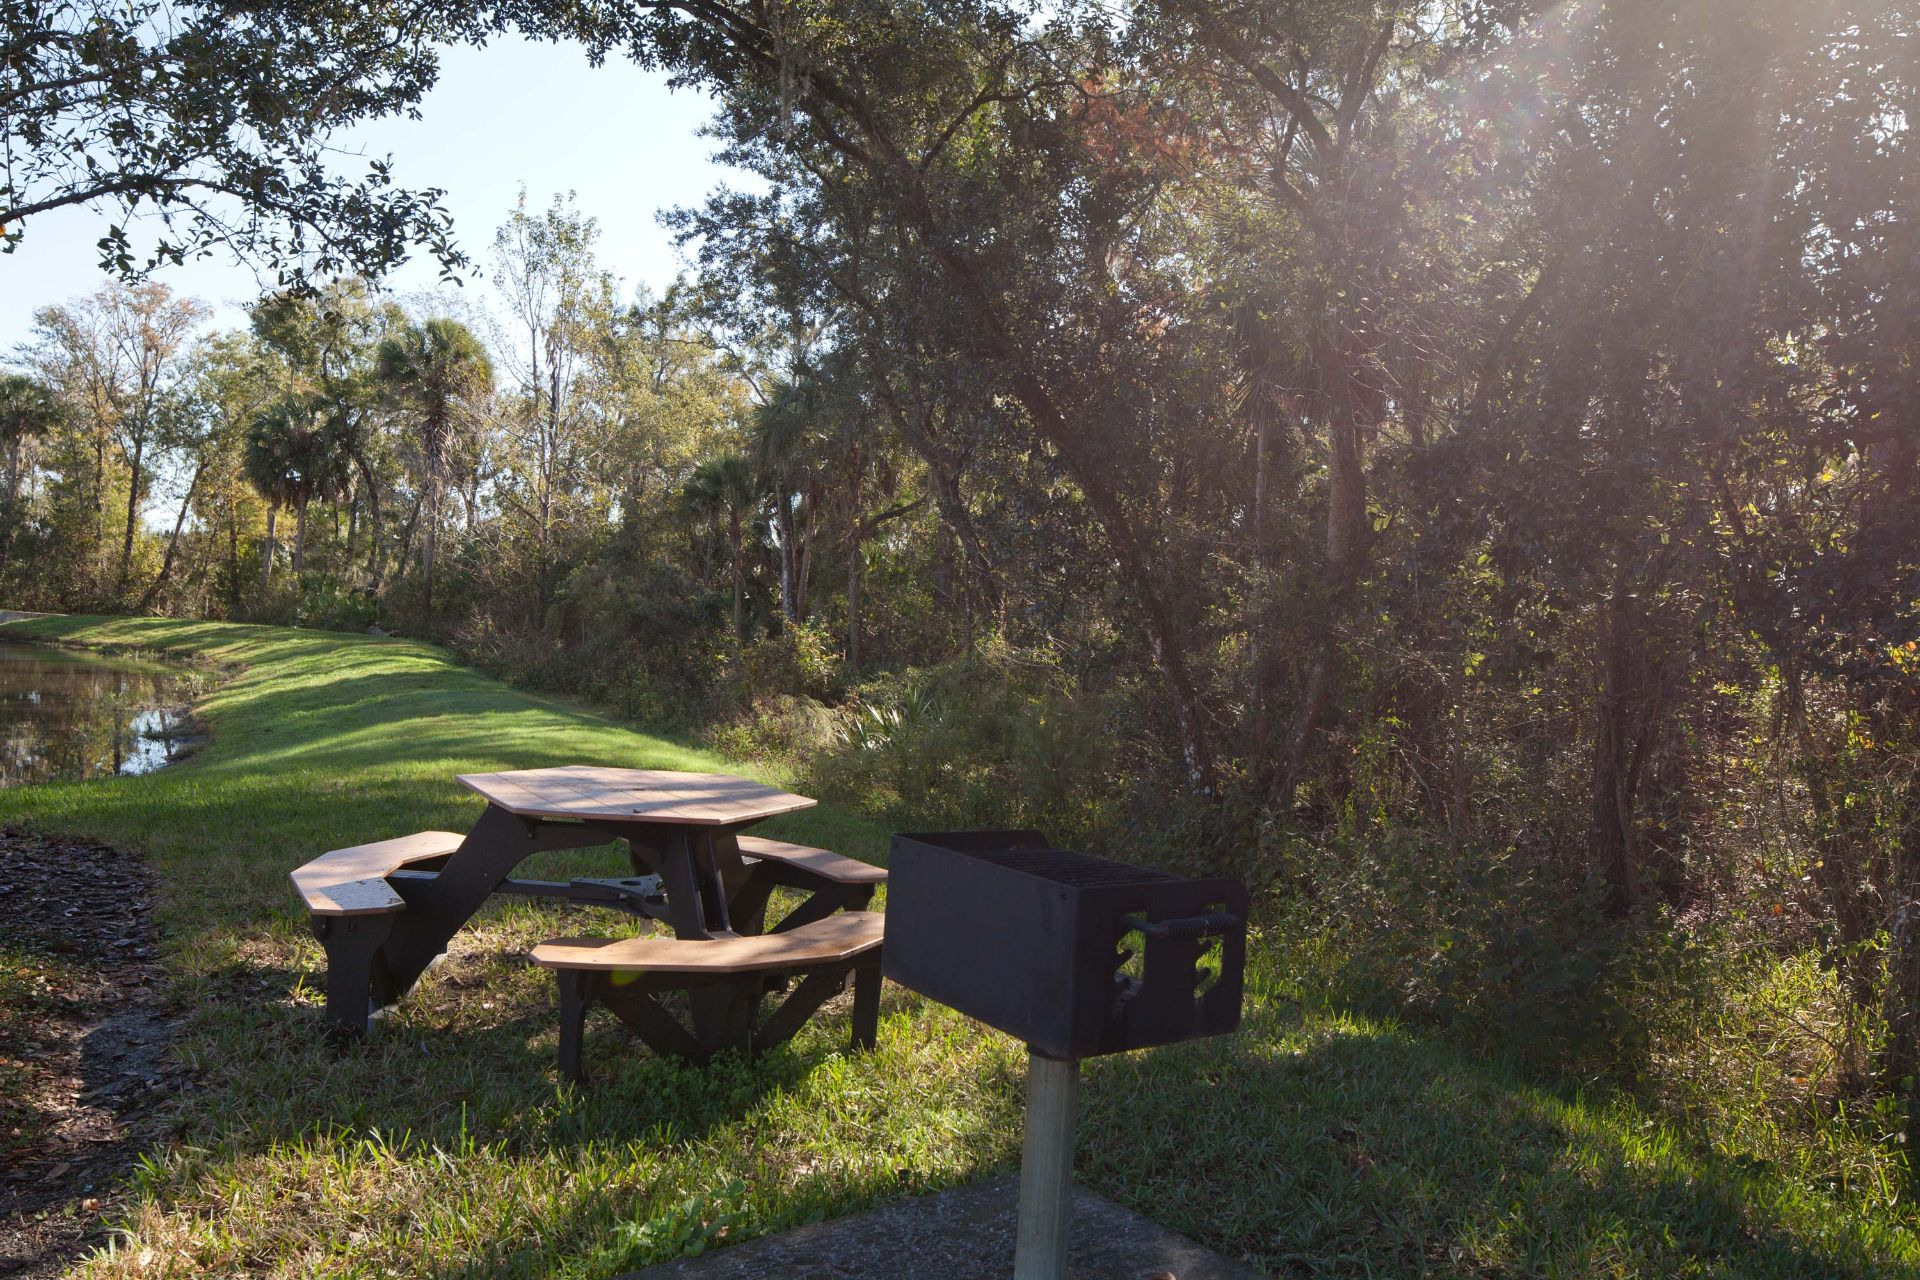 picnic bench and grill near woods